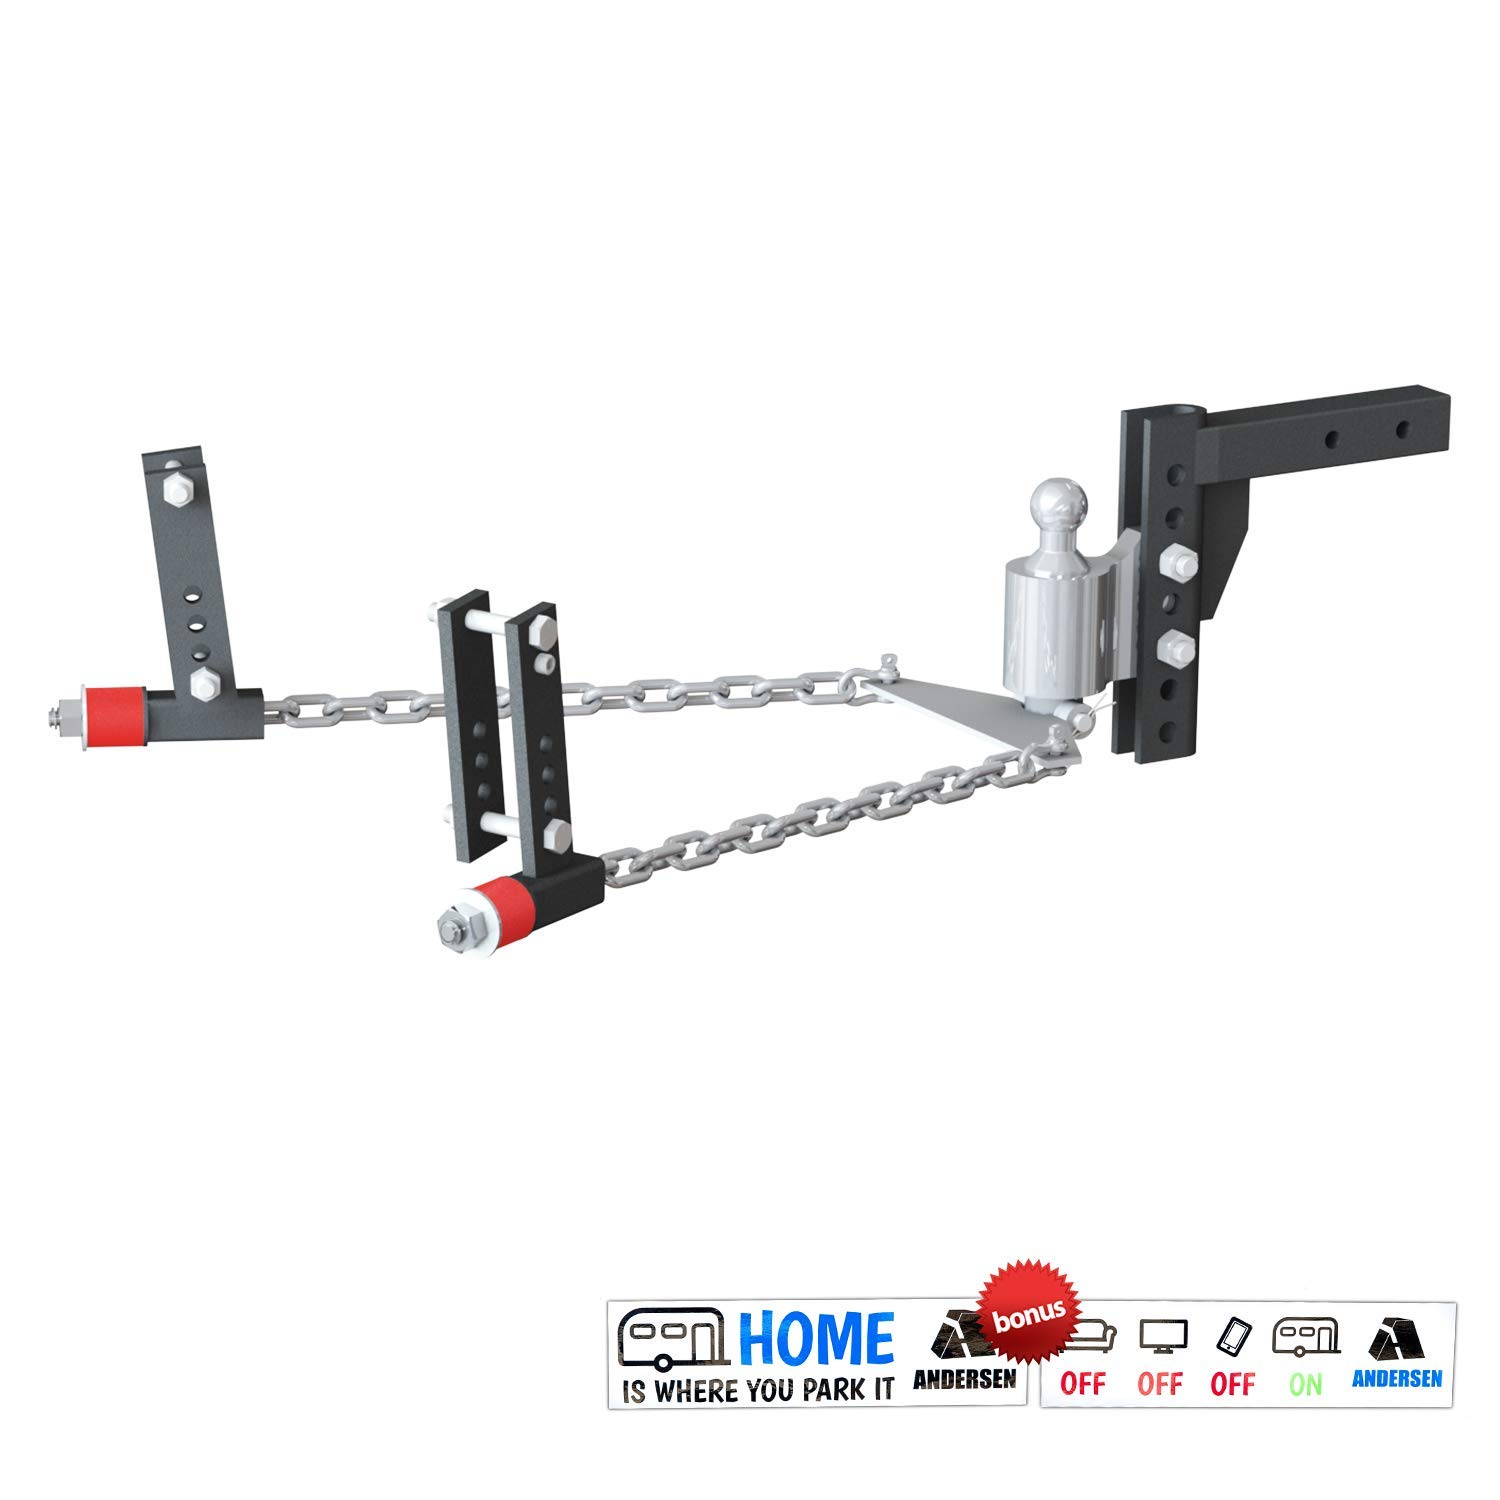 Andersen 3380 | Weight Distribution Hitch Kit, 8'' drop/rise, 2-5/16'' ball, 3'', 4'', 5'', 6'' frame by Andersen Hitches